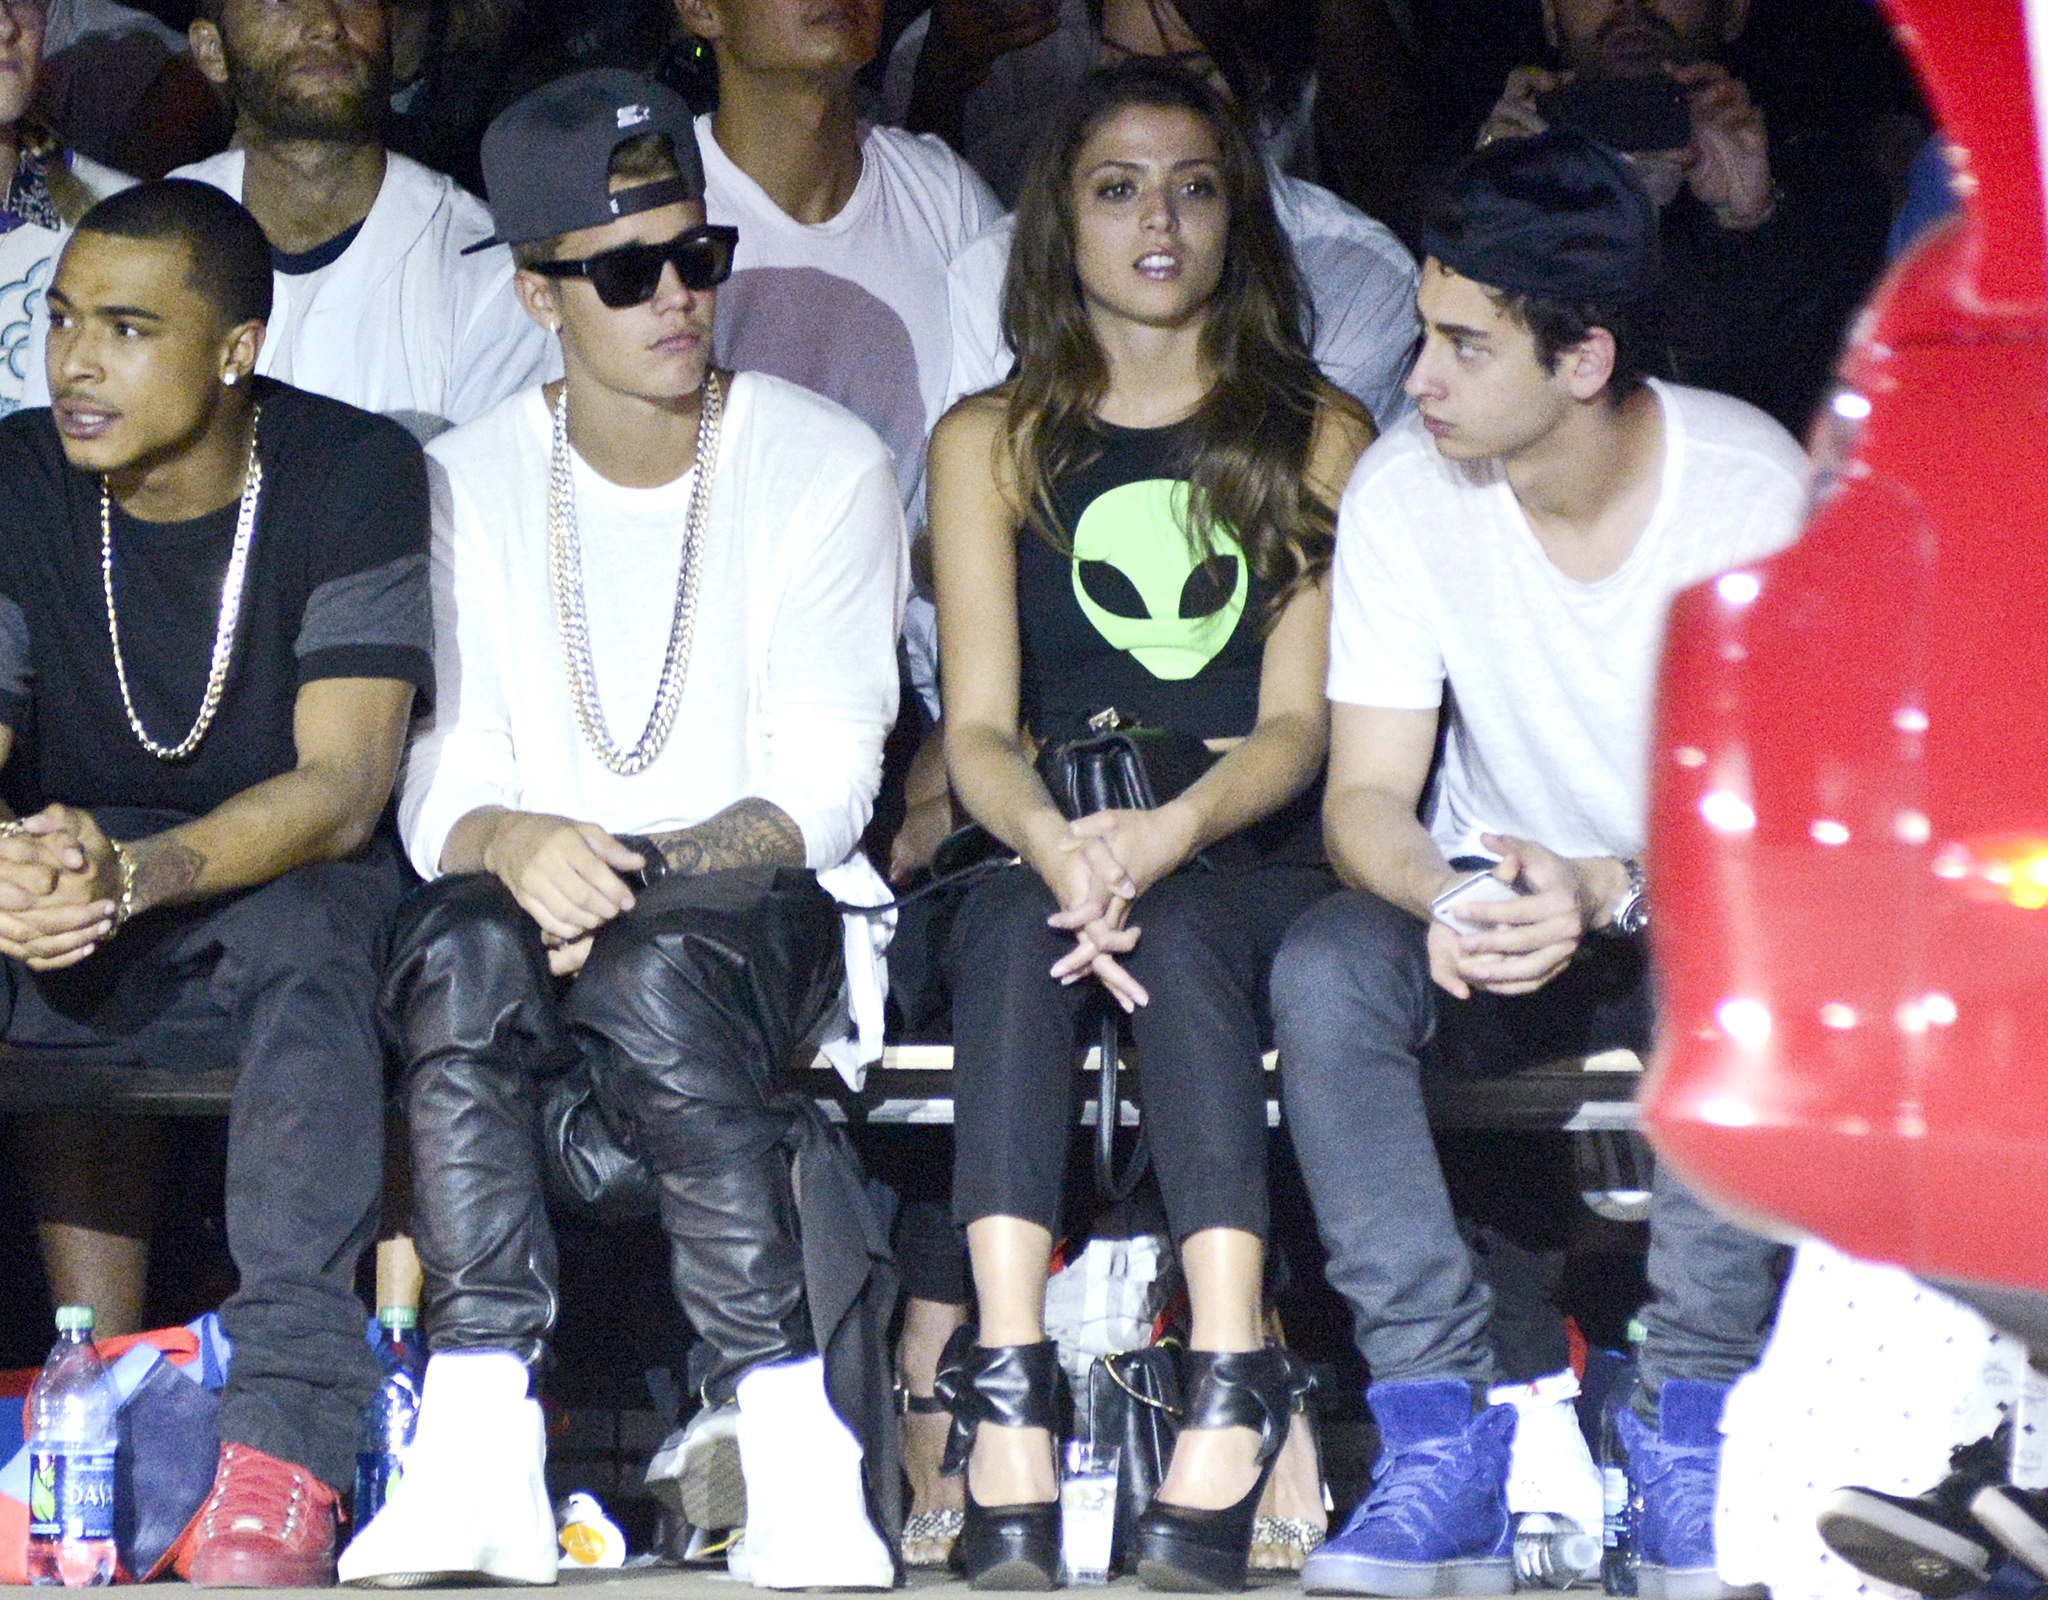 Justin Bieber and Jacque Rae Pyles at New York Fashion Week (Vivien Killilea/Getty Images)